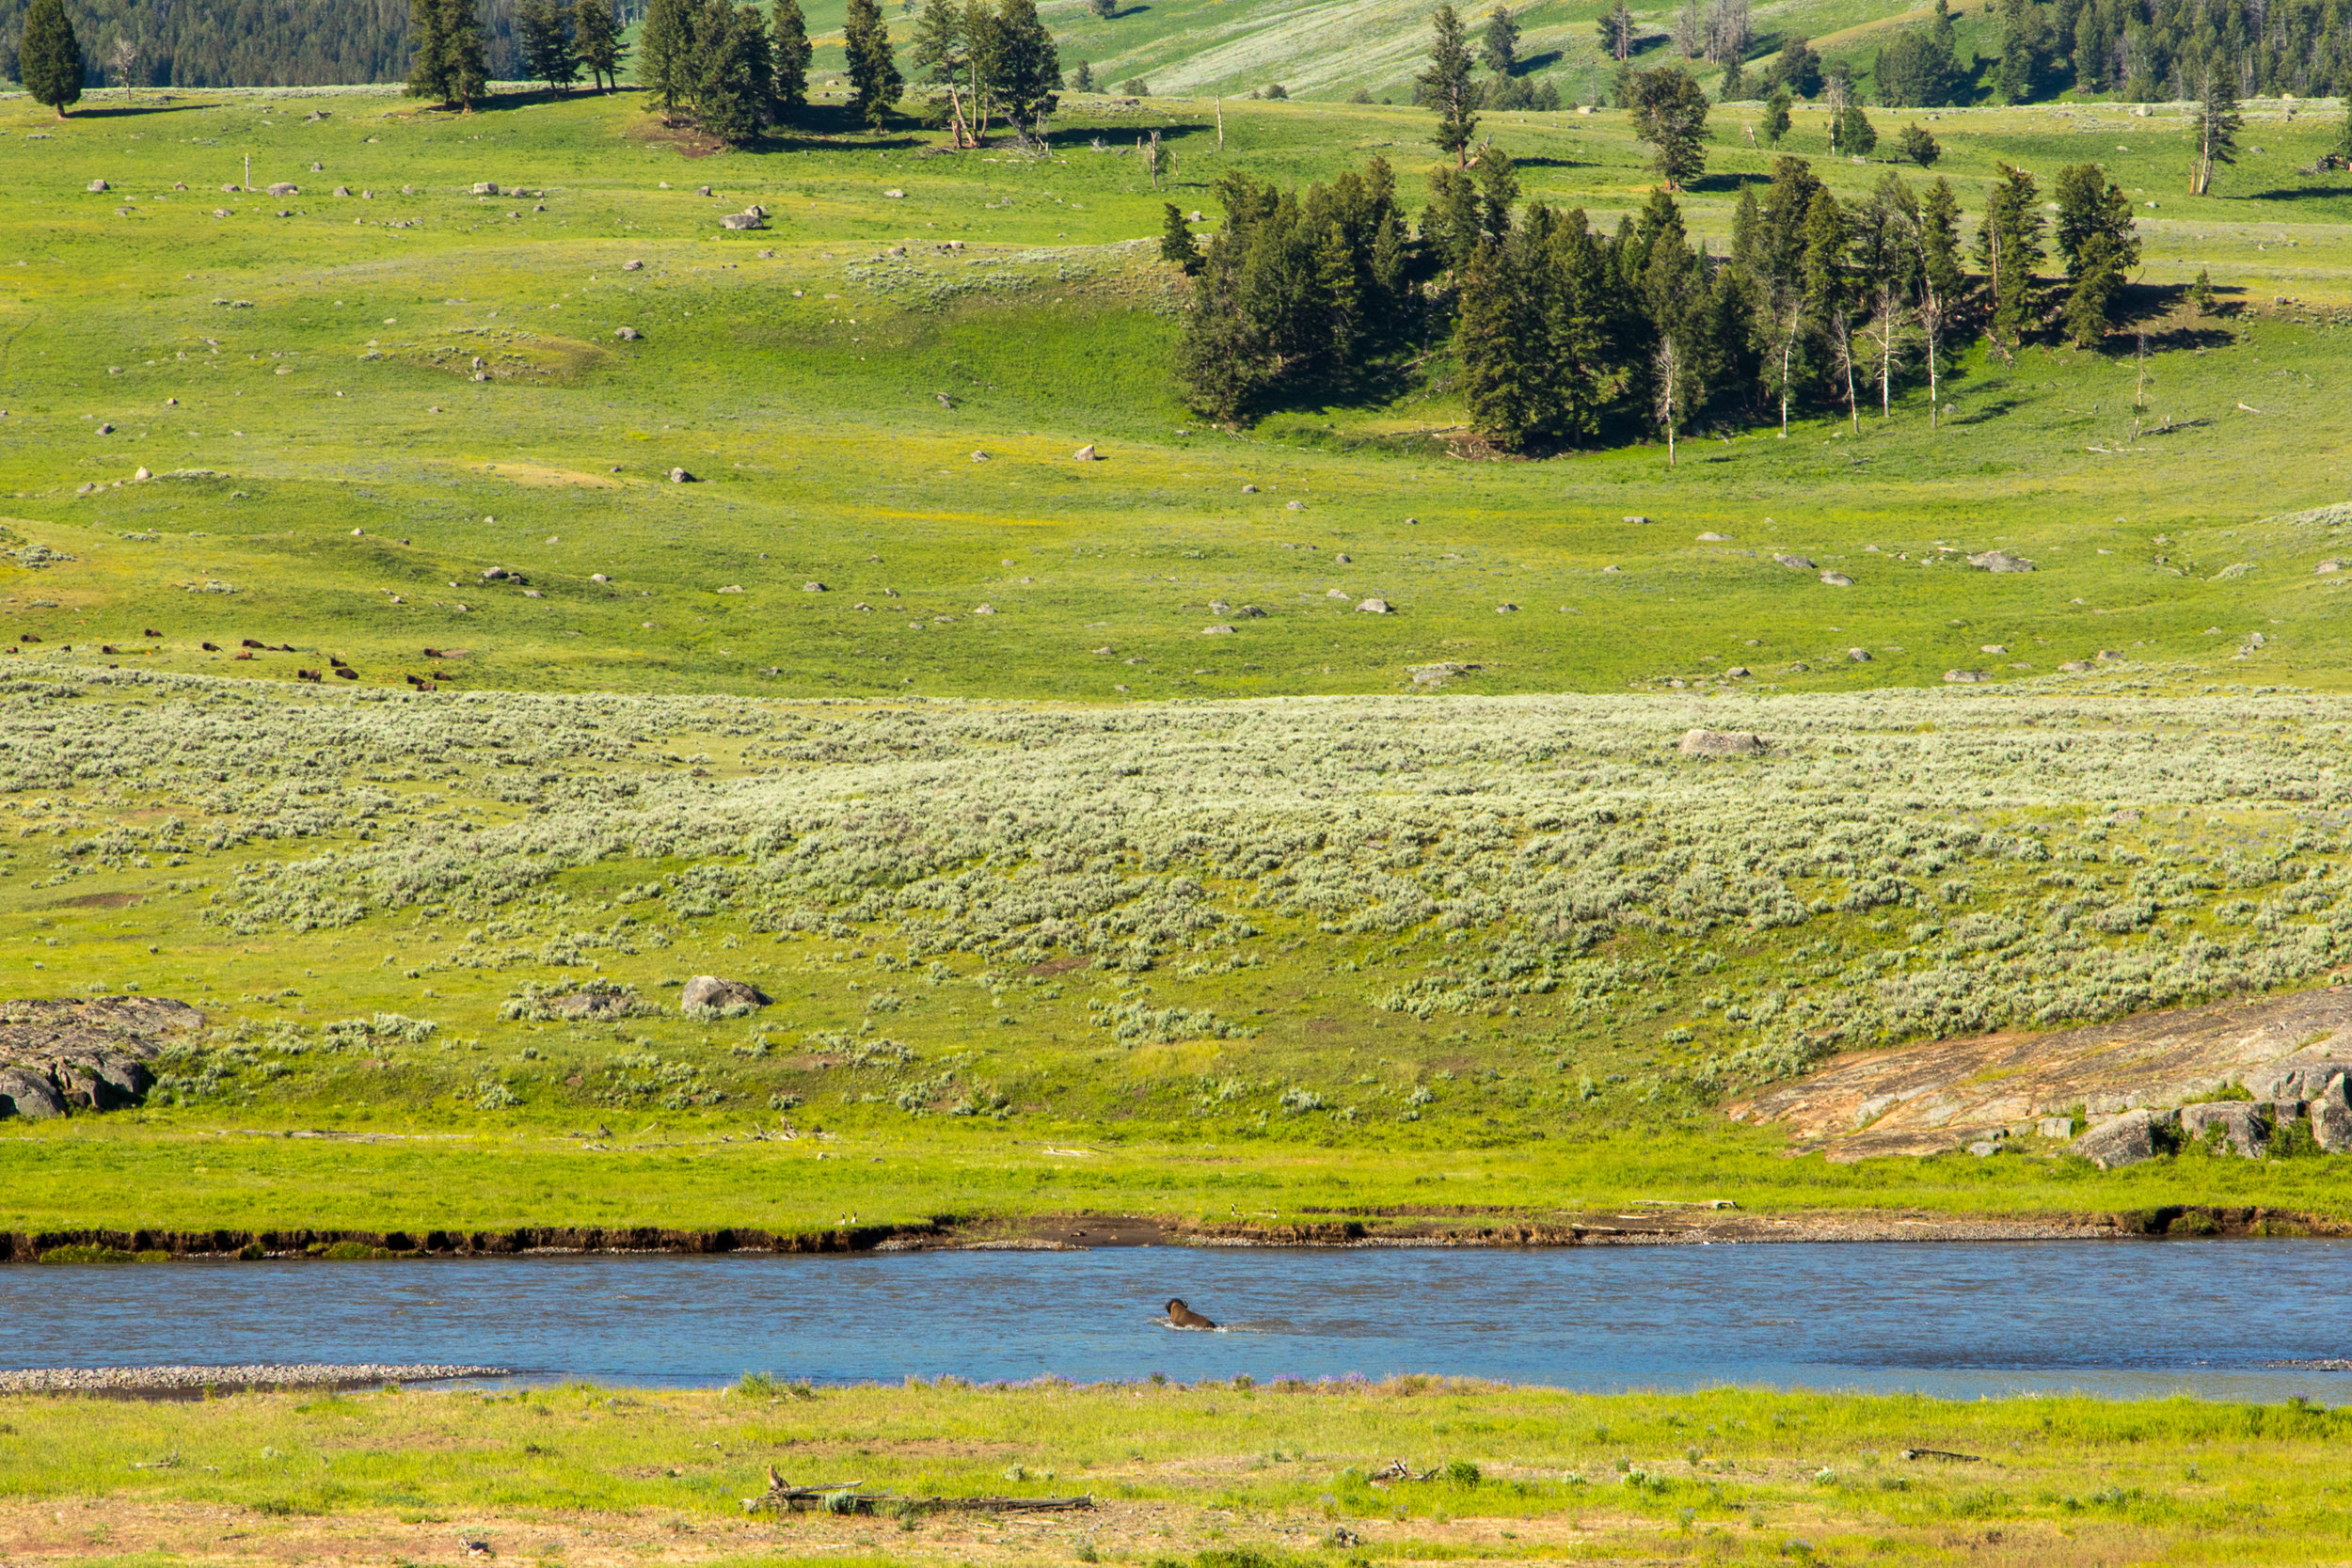 Lamar Valley, Yellowstone National Park, Image # 6015